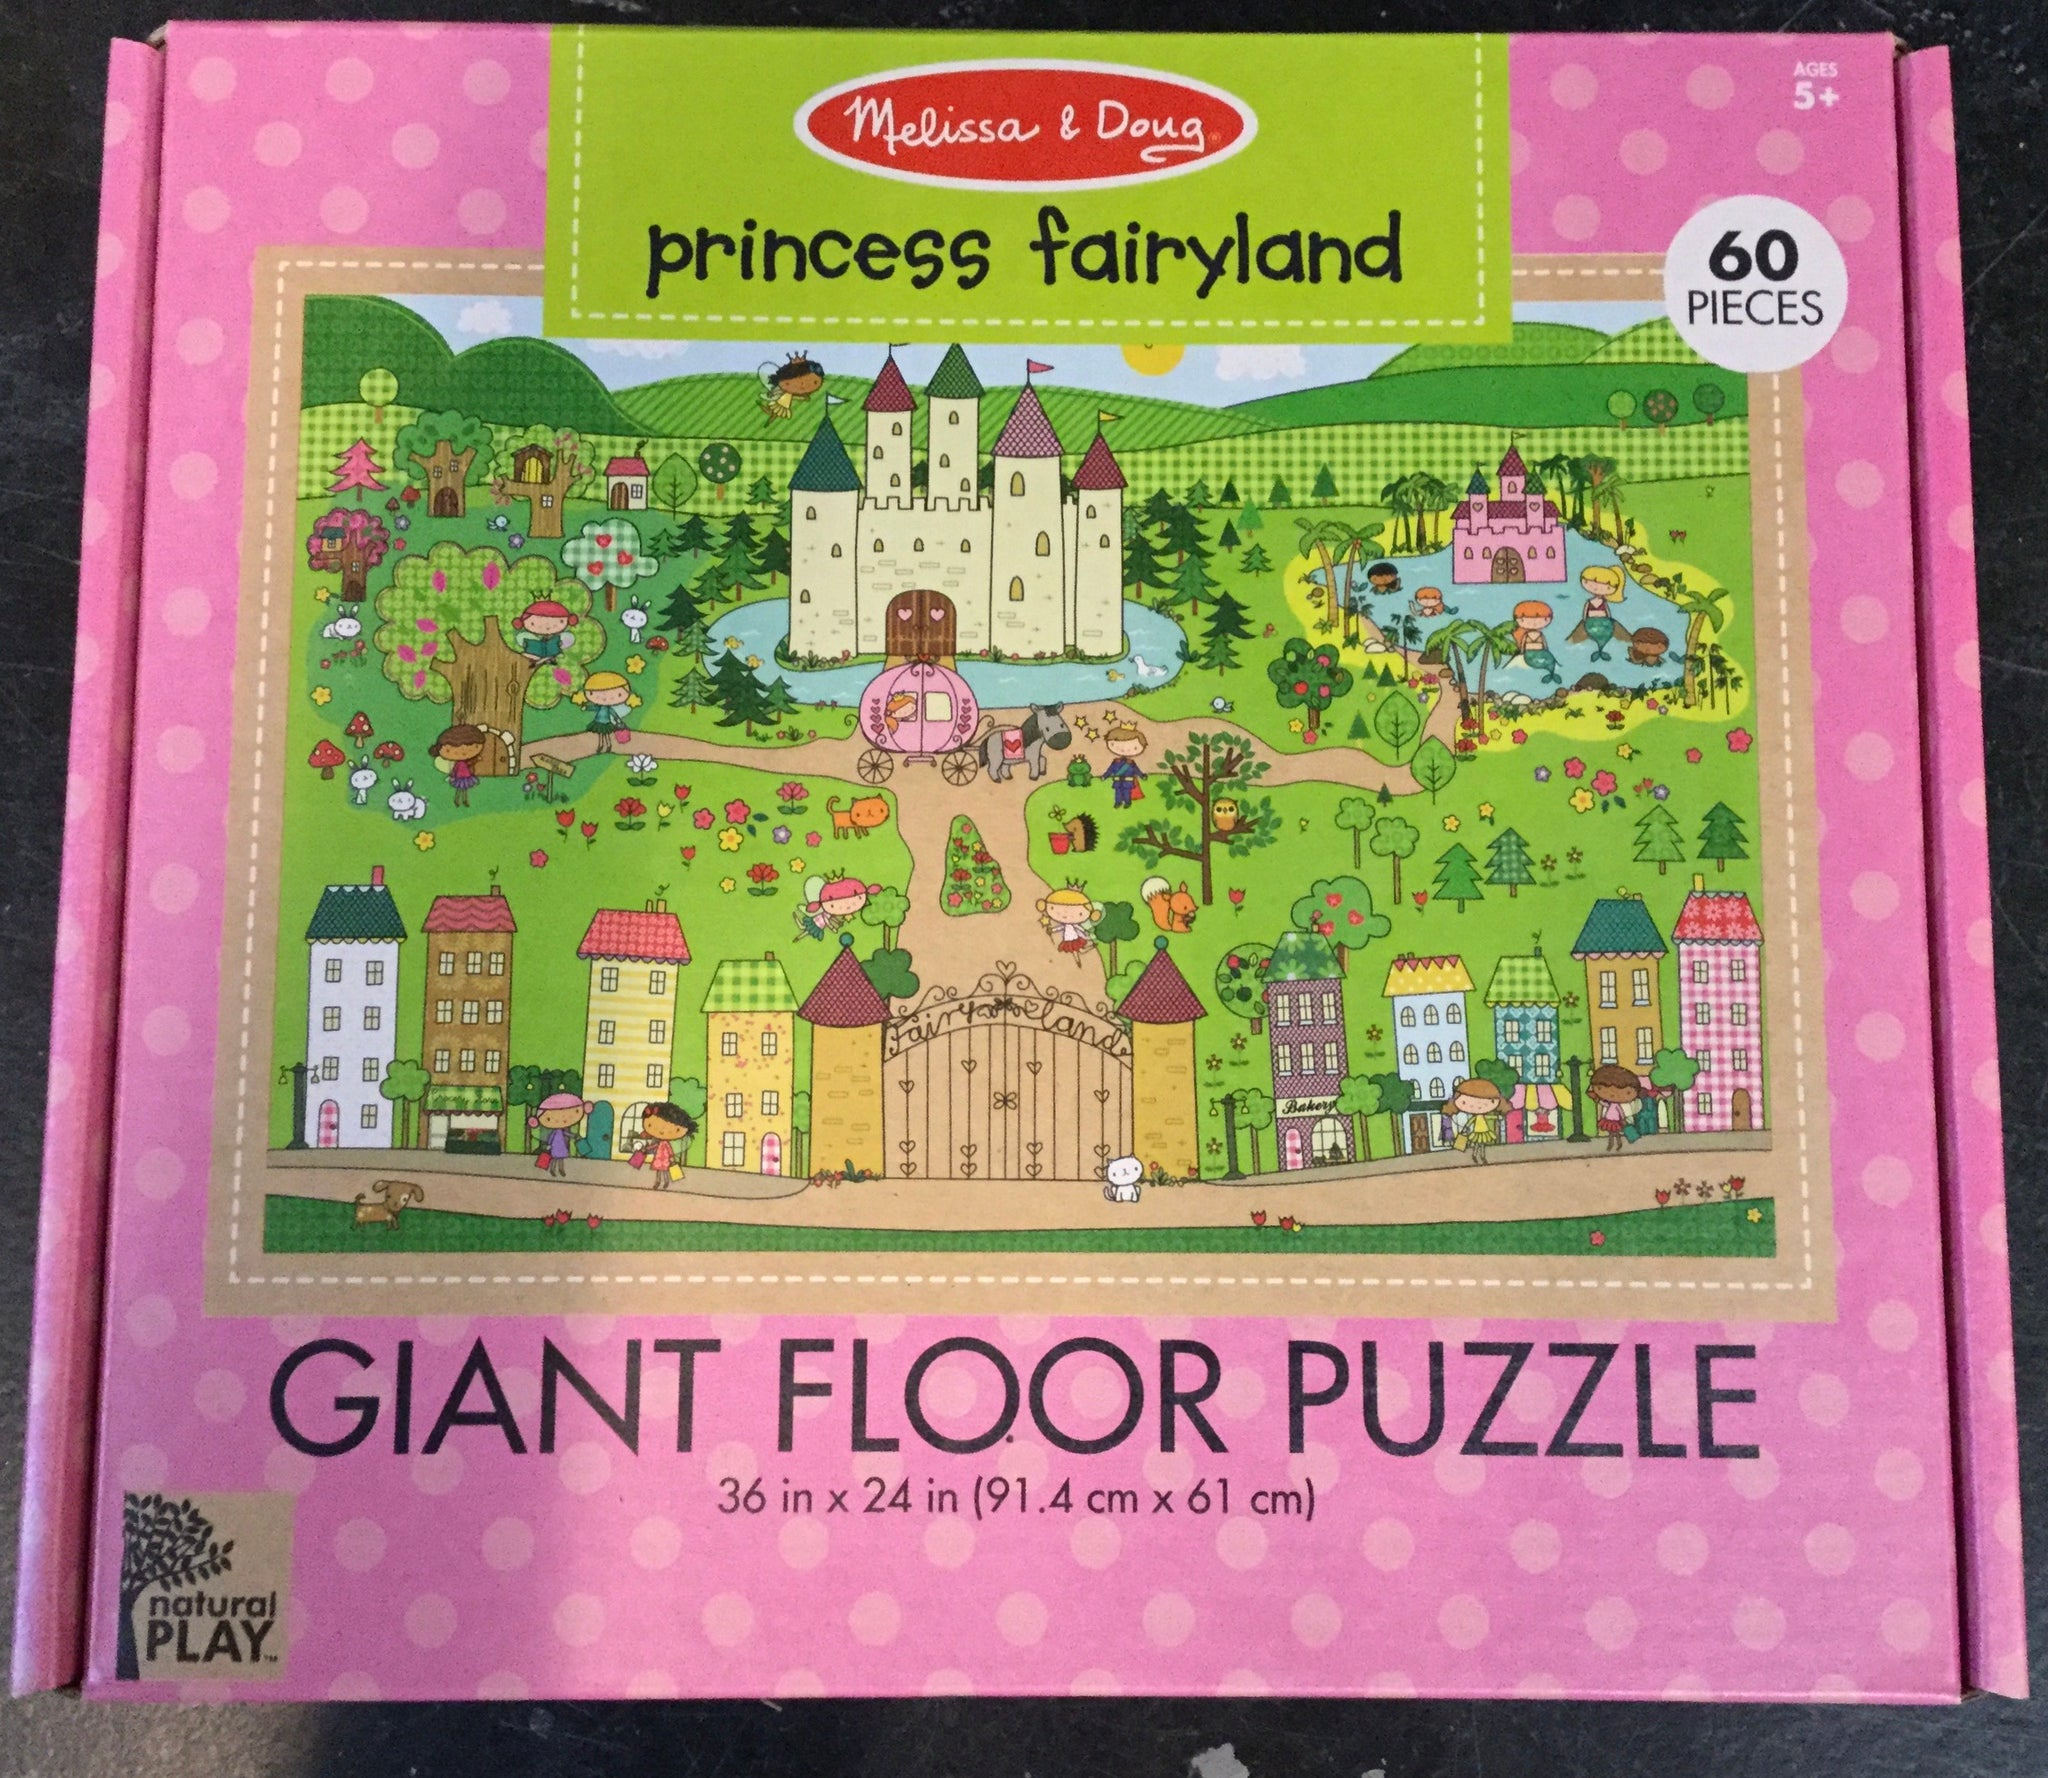 Princess Fairyland Giant Floor Puzzle